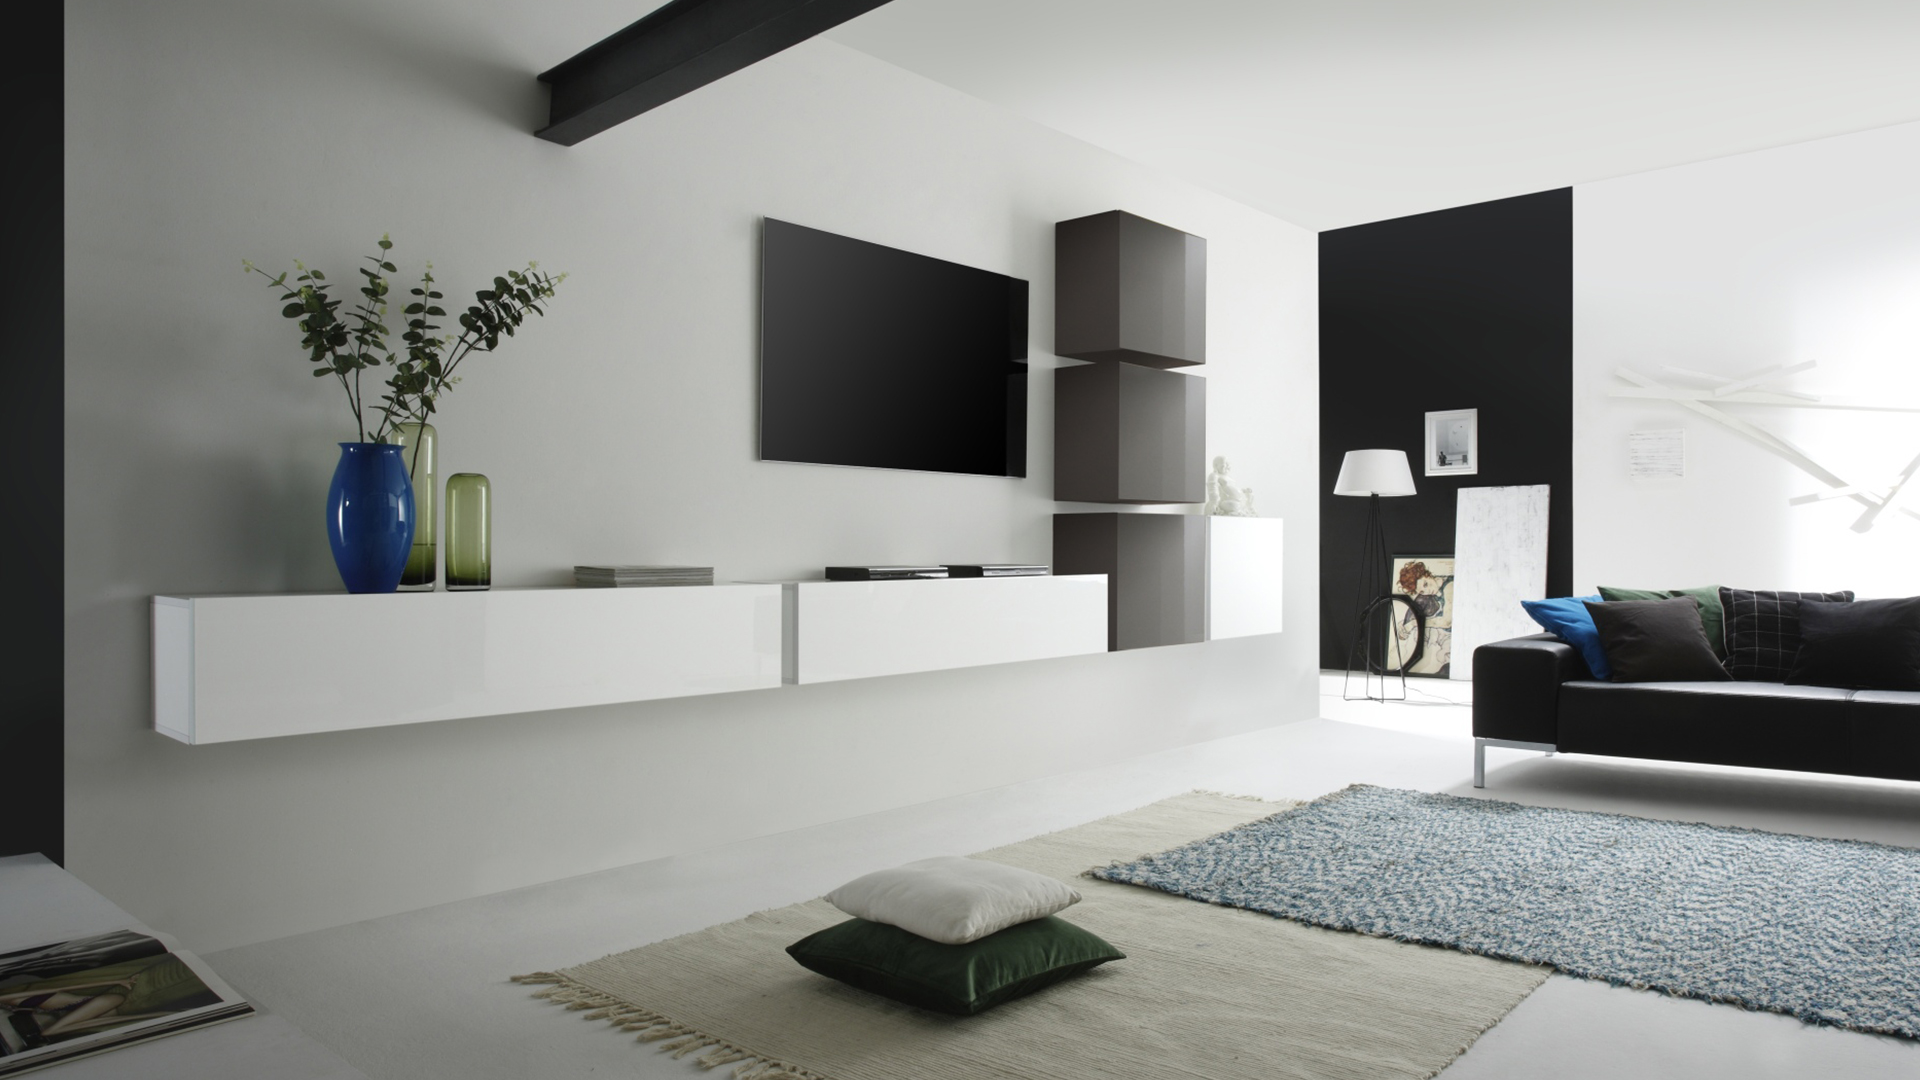 meuble suspendu au mur. Black Bedroom Furniture Sets. Home Design Ideas